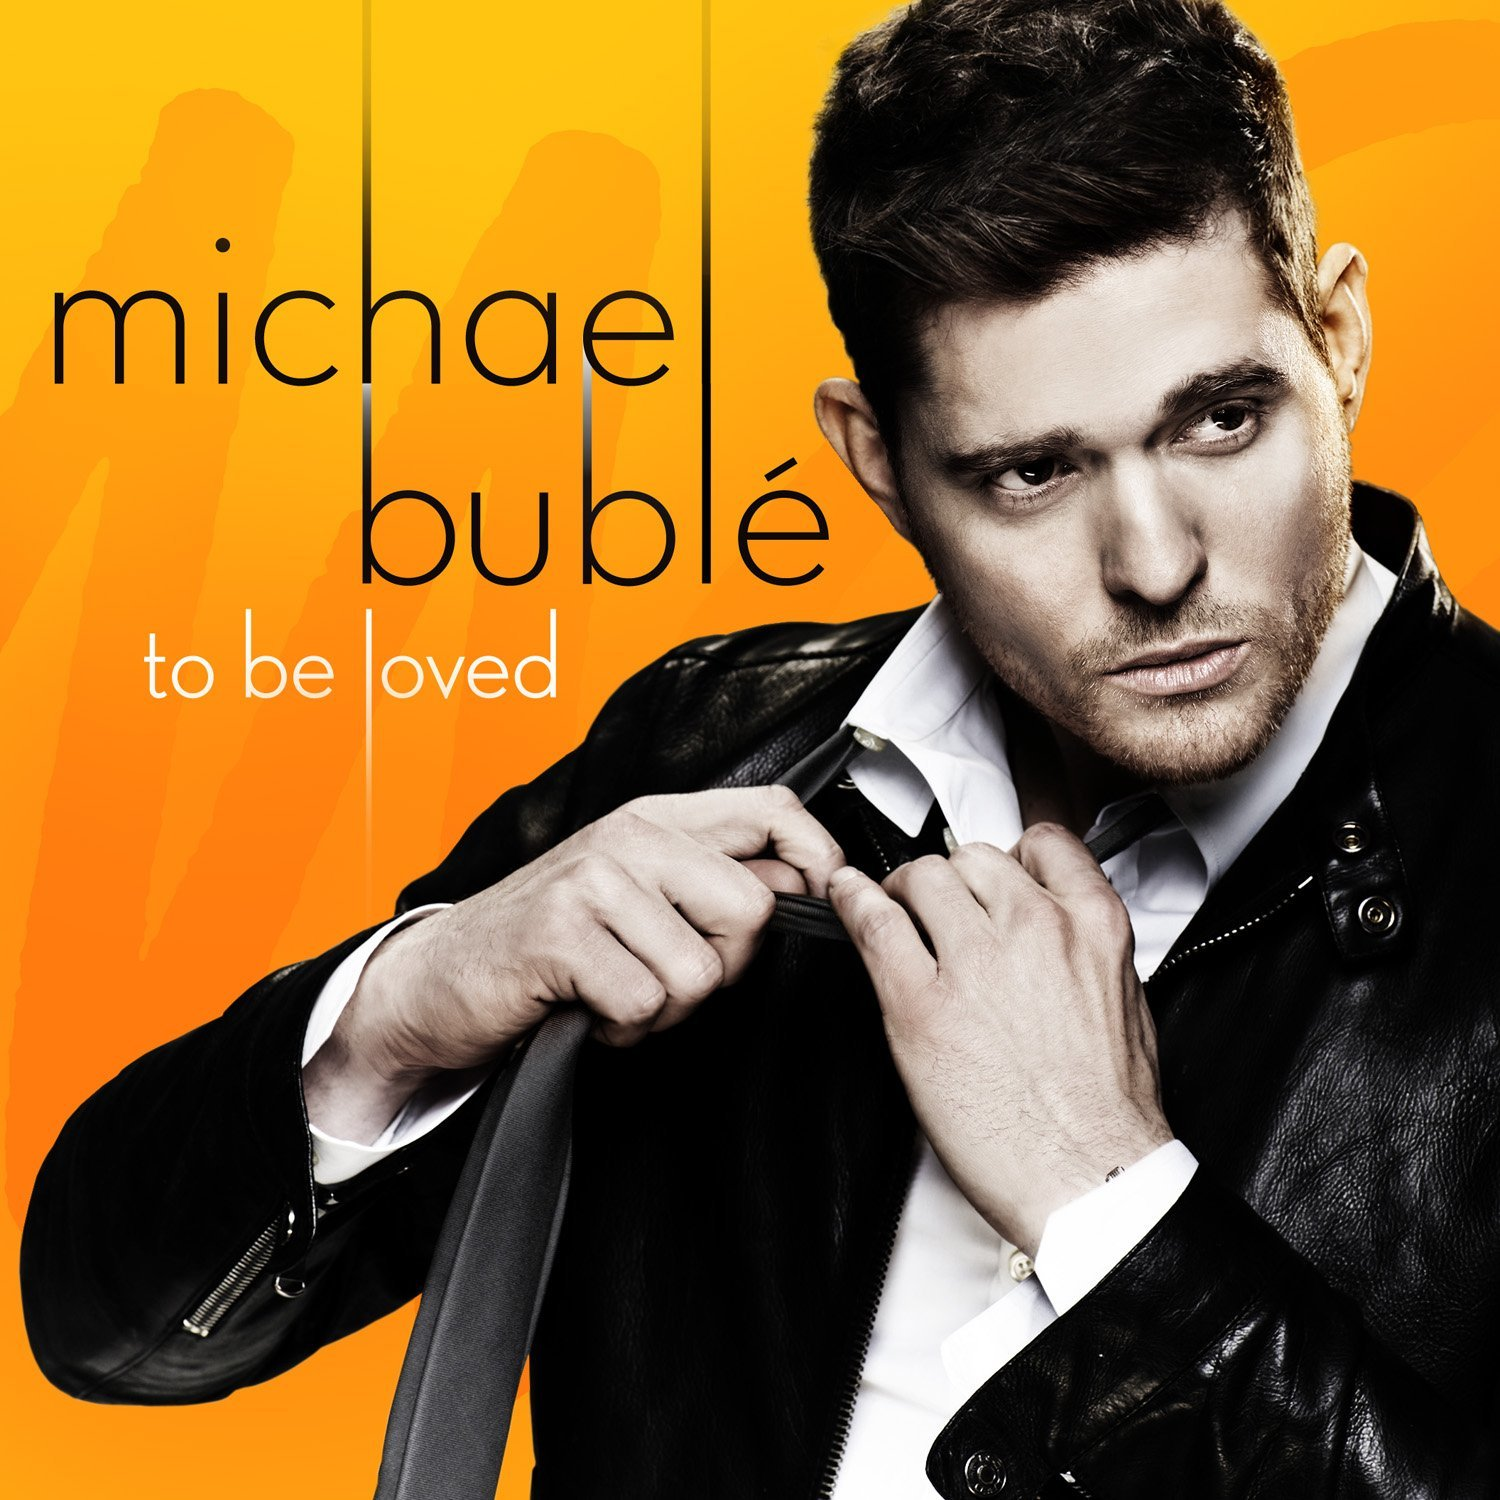 Michael bublé's to be loved